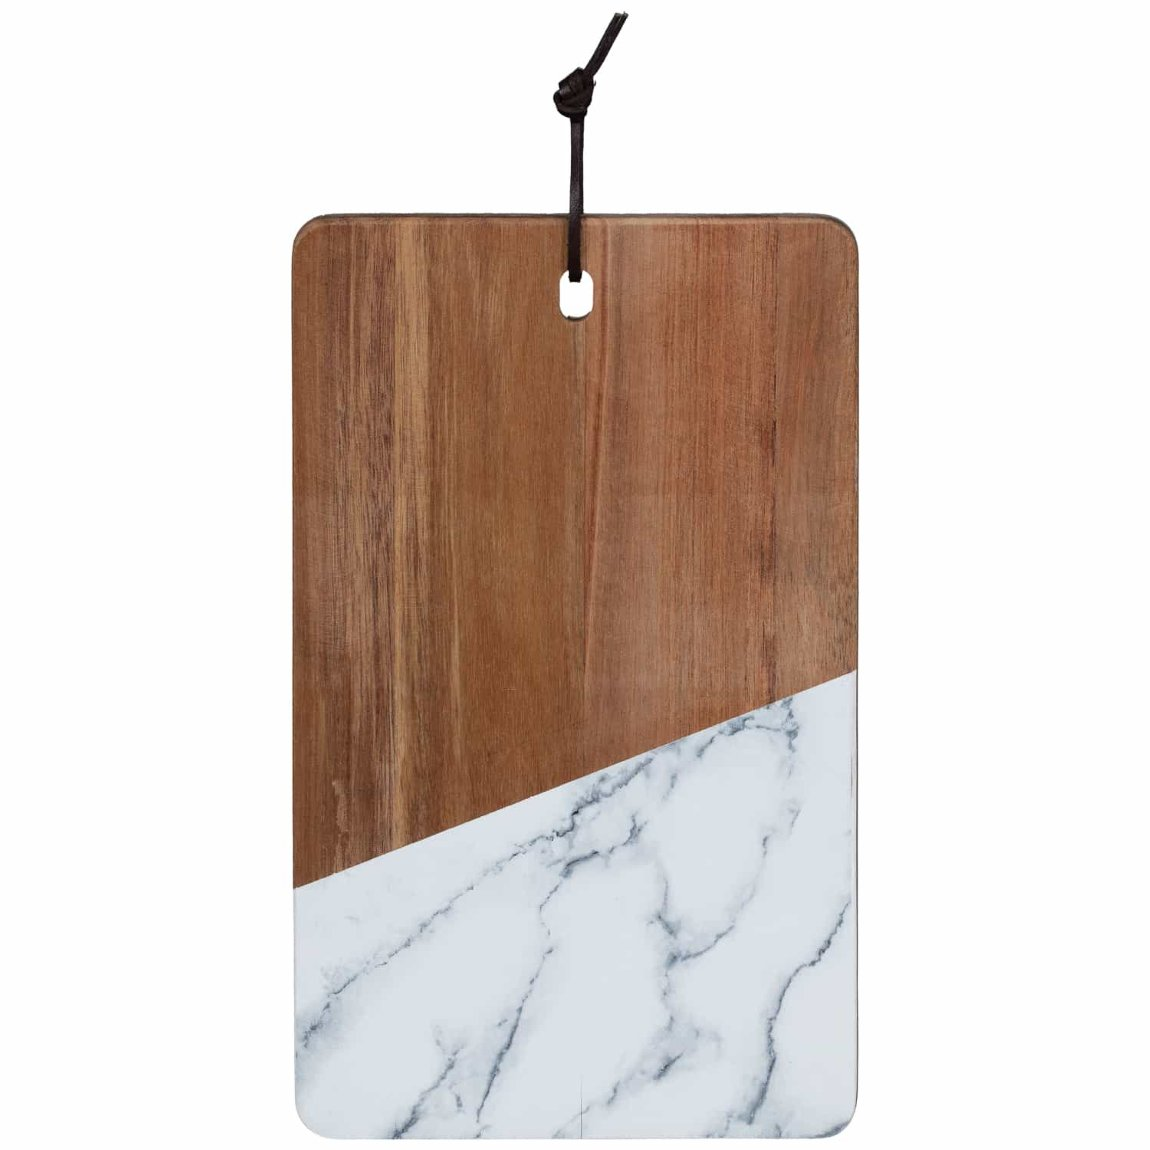 Acacia Chopping Board with Marble - Small